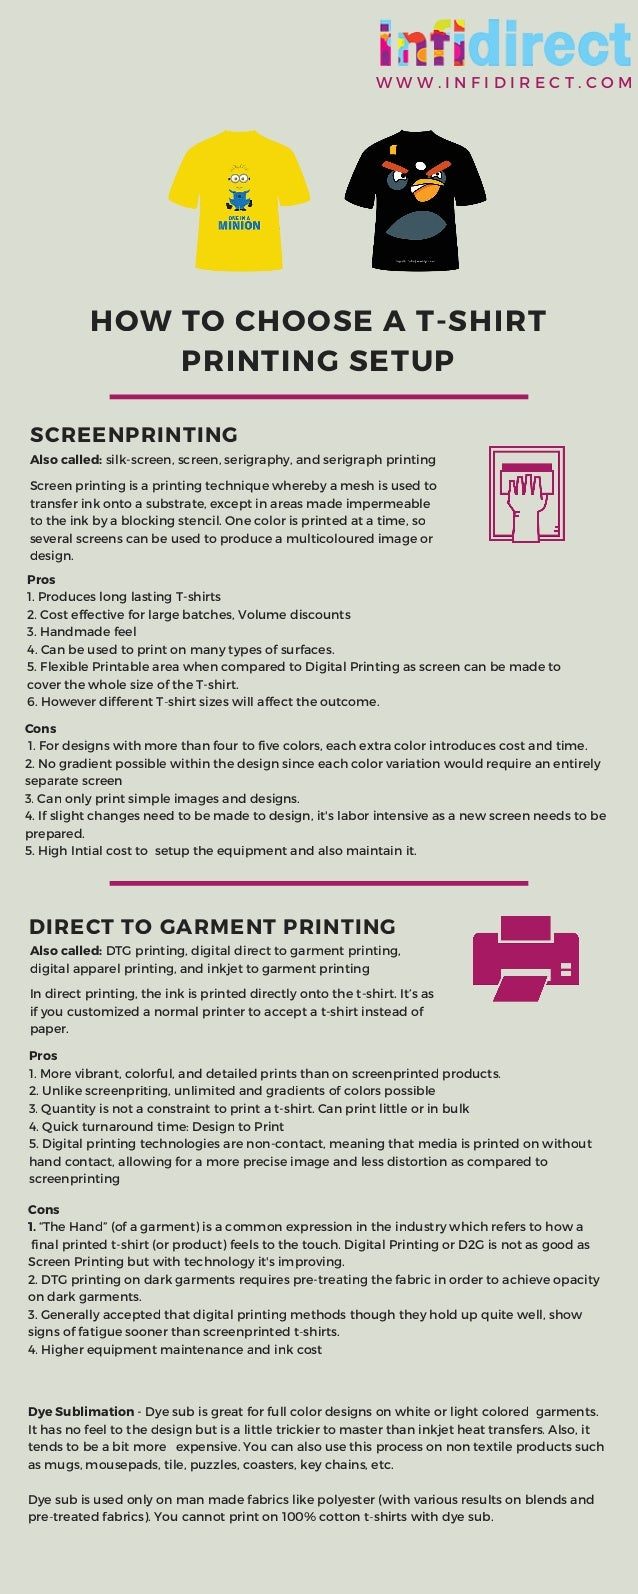 How To Identify The Right Printing Setup For Your T Shirt Business